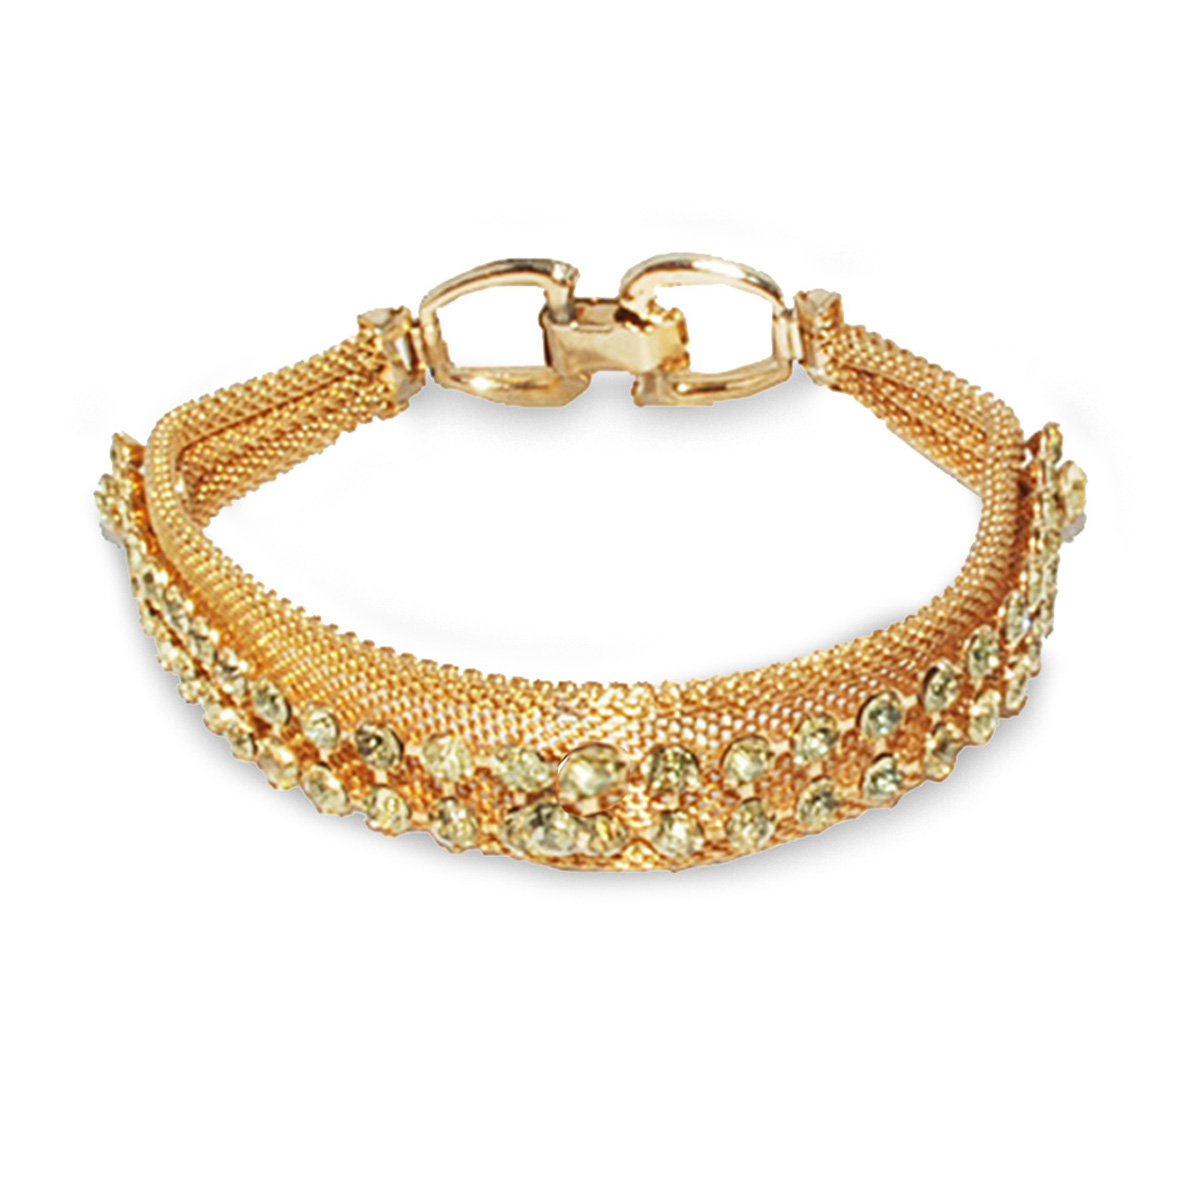 1960s dog collar bracelet, yellow rhinestones